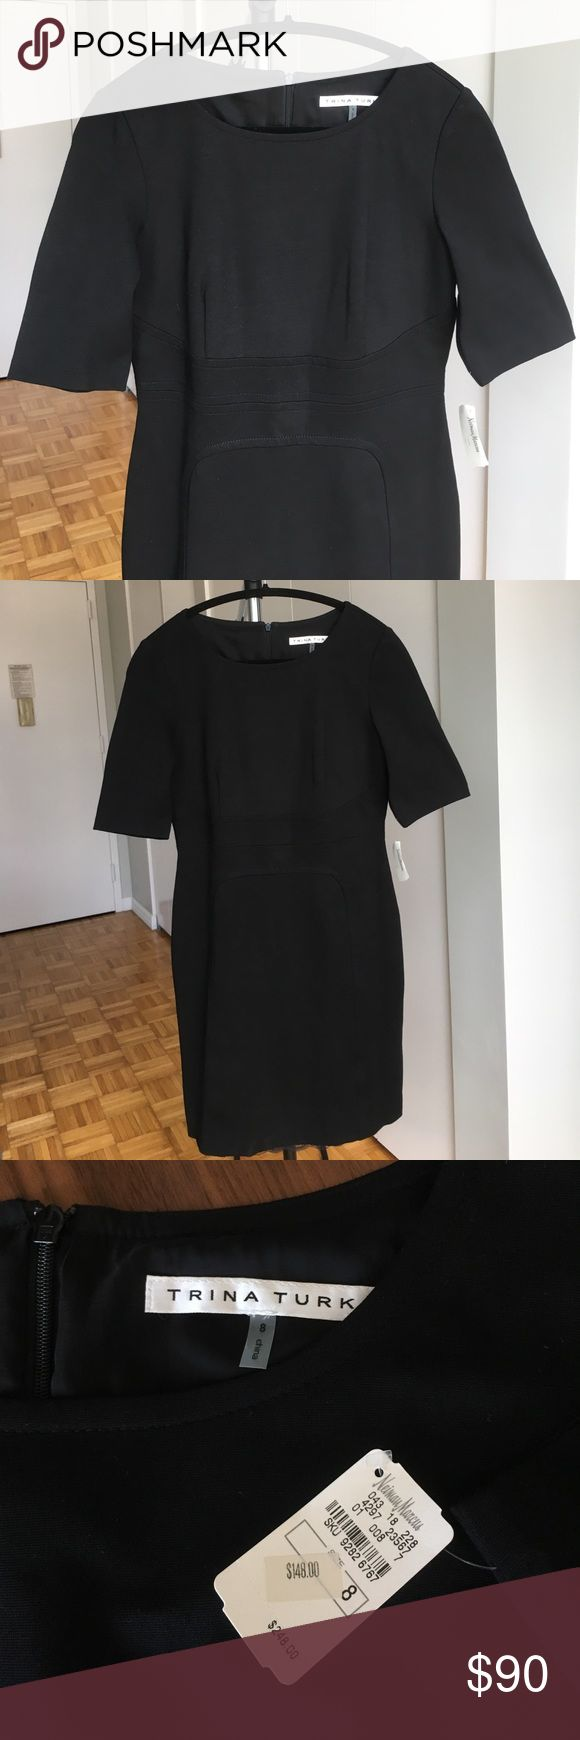 NWT- Black Trina Turk Dress, SZ 8 I bought  this dress at Neiman Marcus and never got into it. Bummer, because the details at the waist and the horseshoe pattern are super flattering. Great for work or dress up for a nice event. Snug enough to flatter, but comfy. Zips up the back. It retailed for $248 & I paid $148.                                                                               •Fully lined                                                                              •69%…